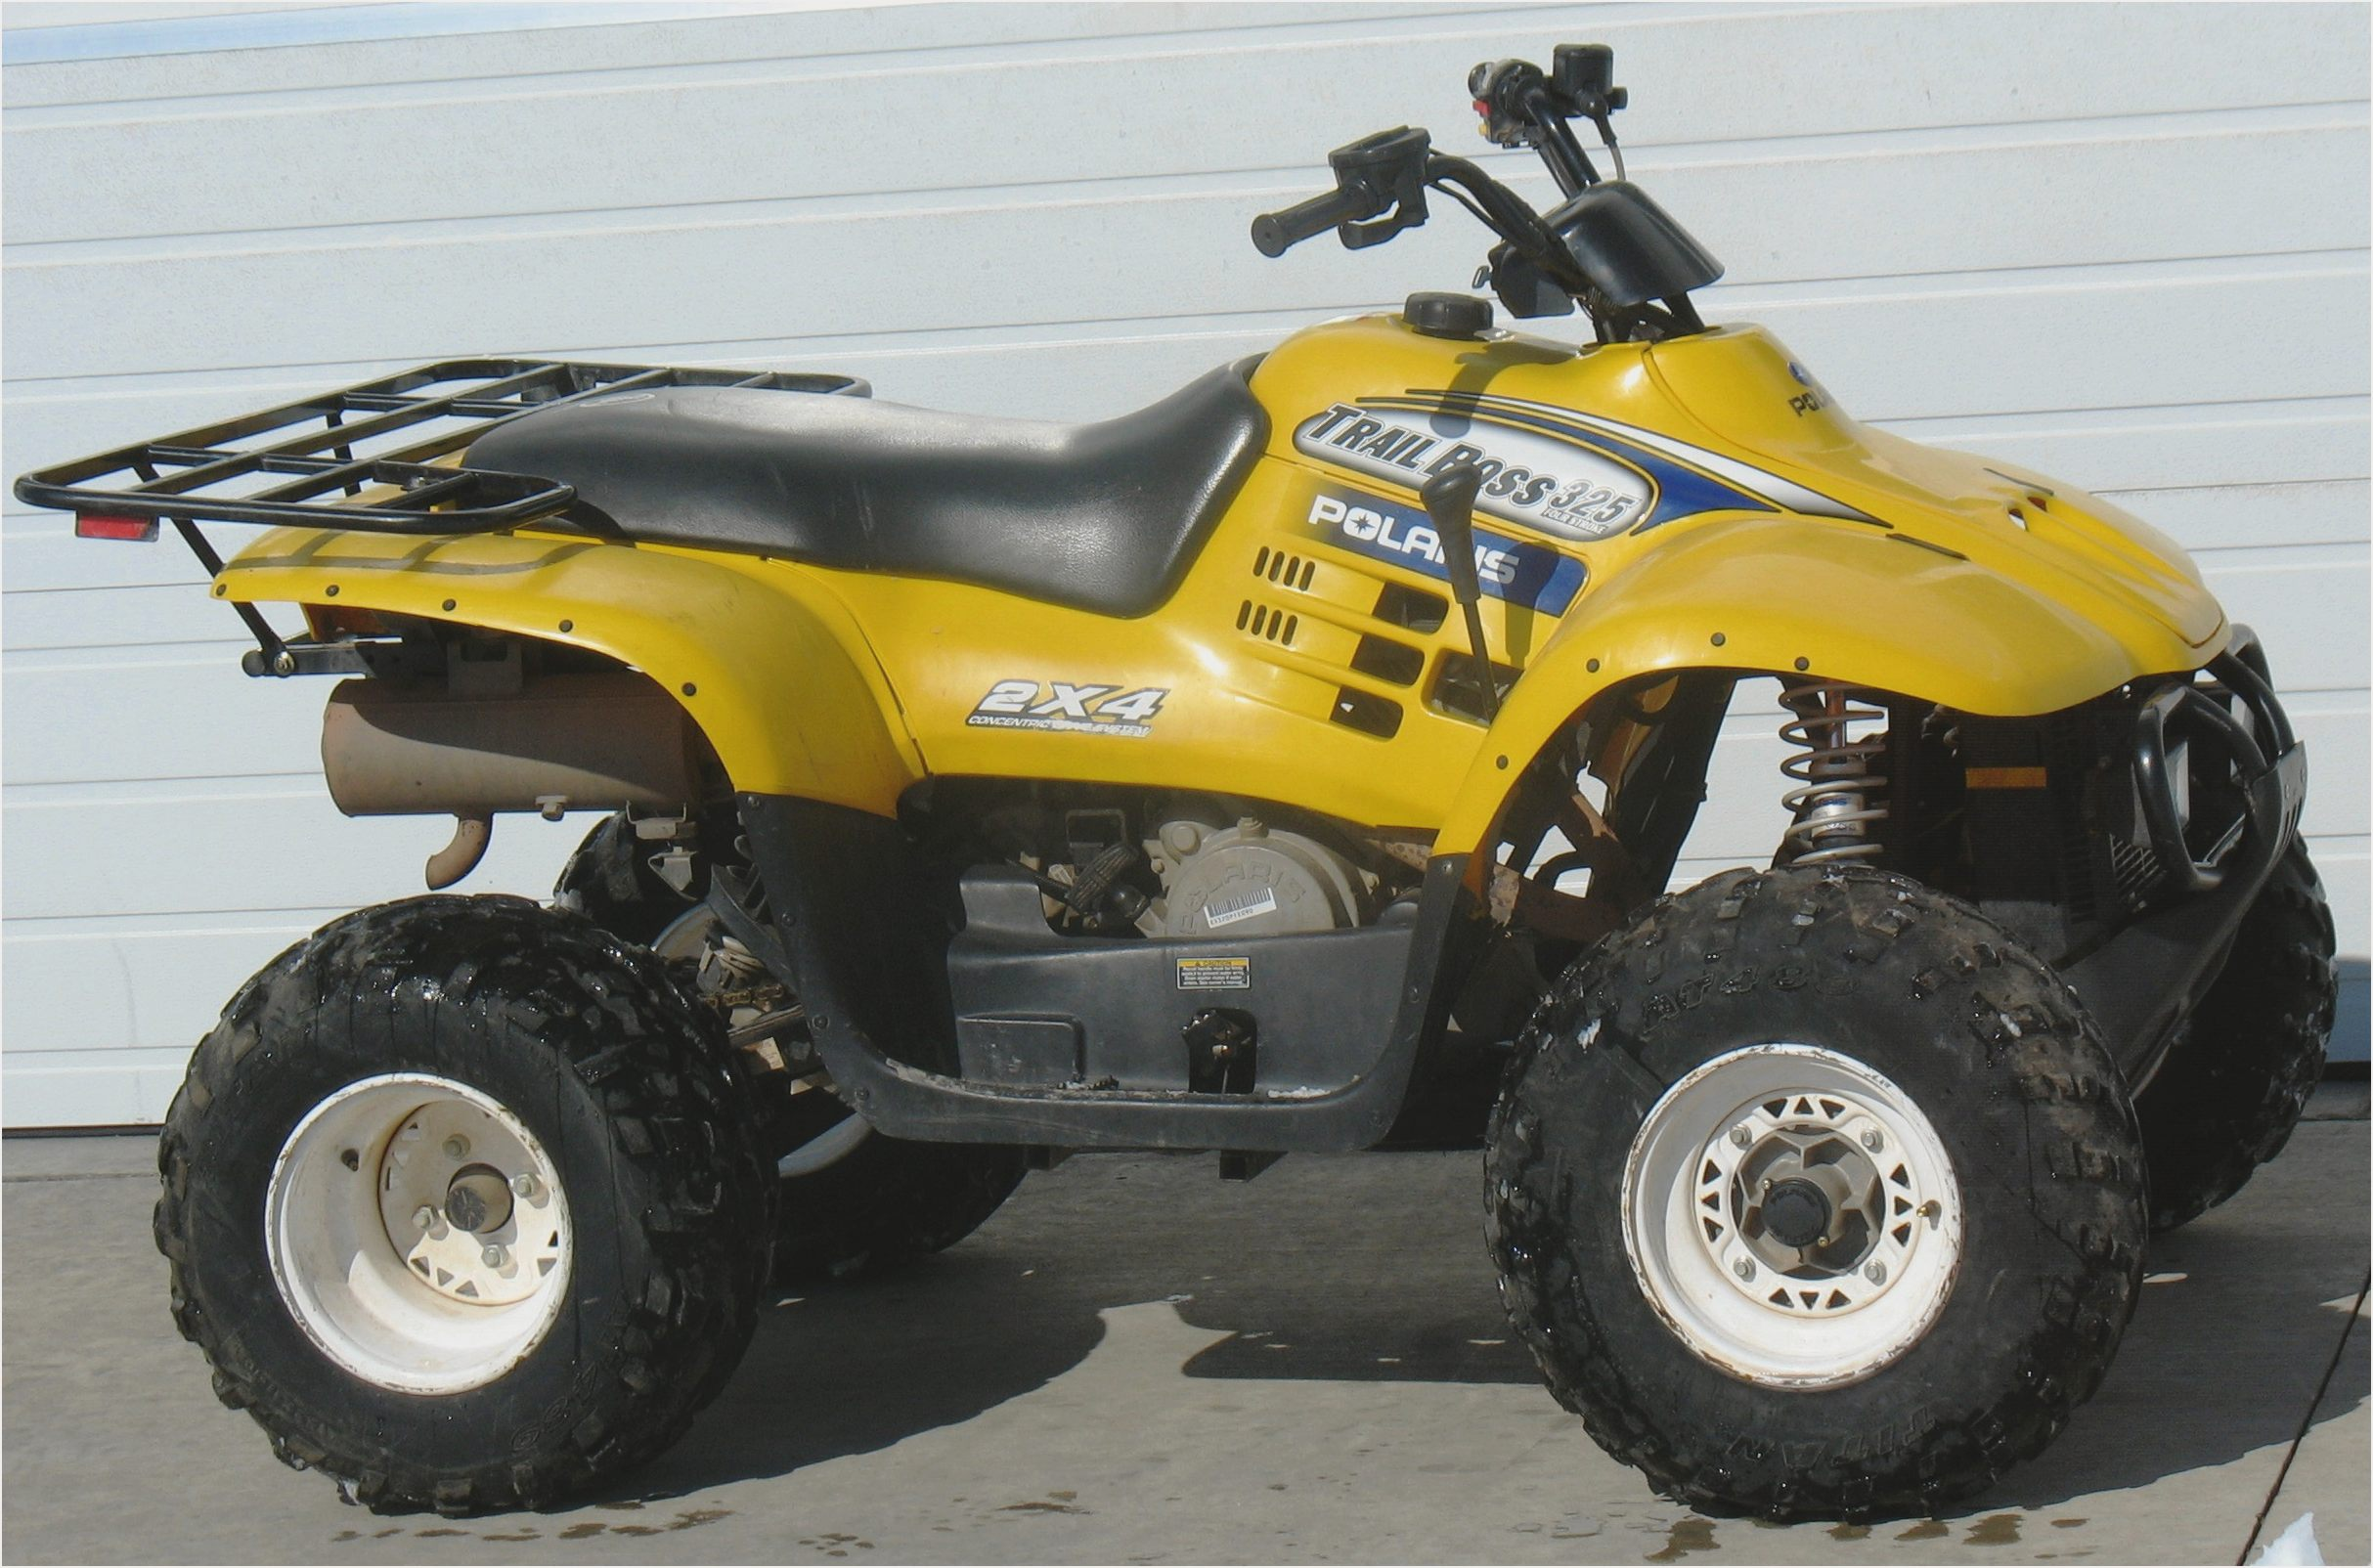 Polaris Trail Boss 325 2000 images #120868